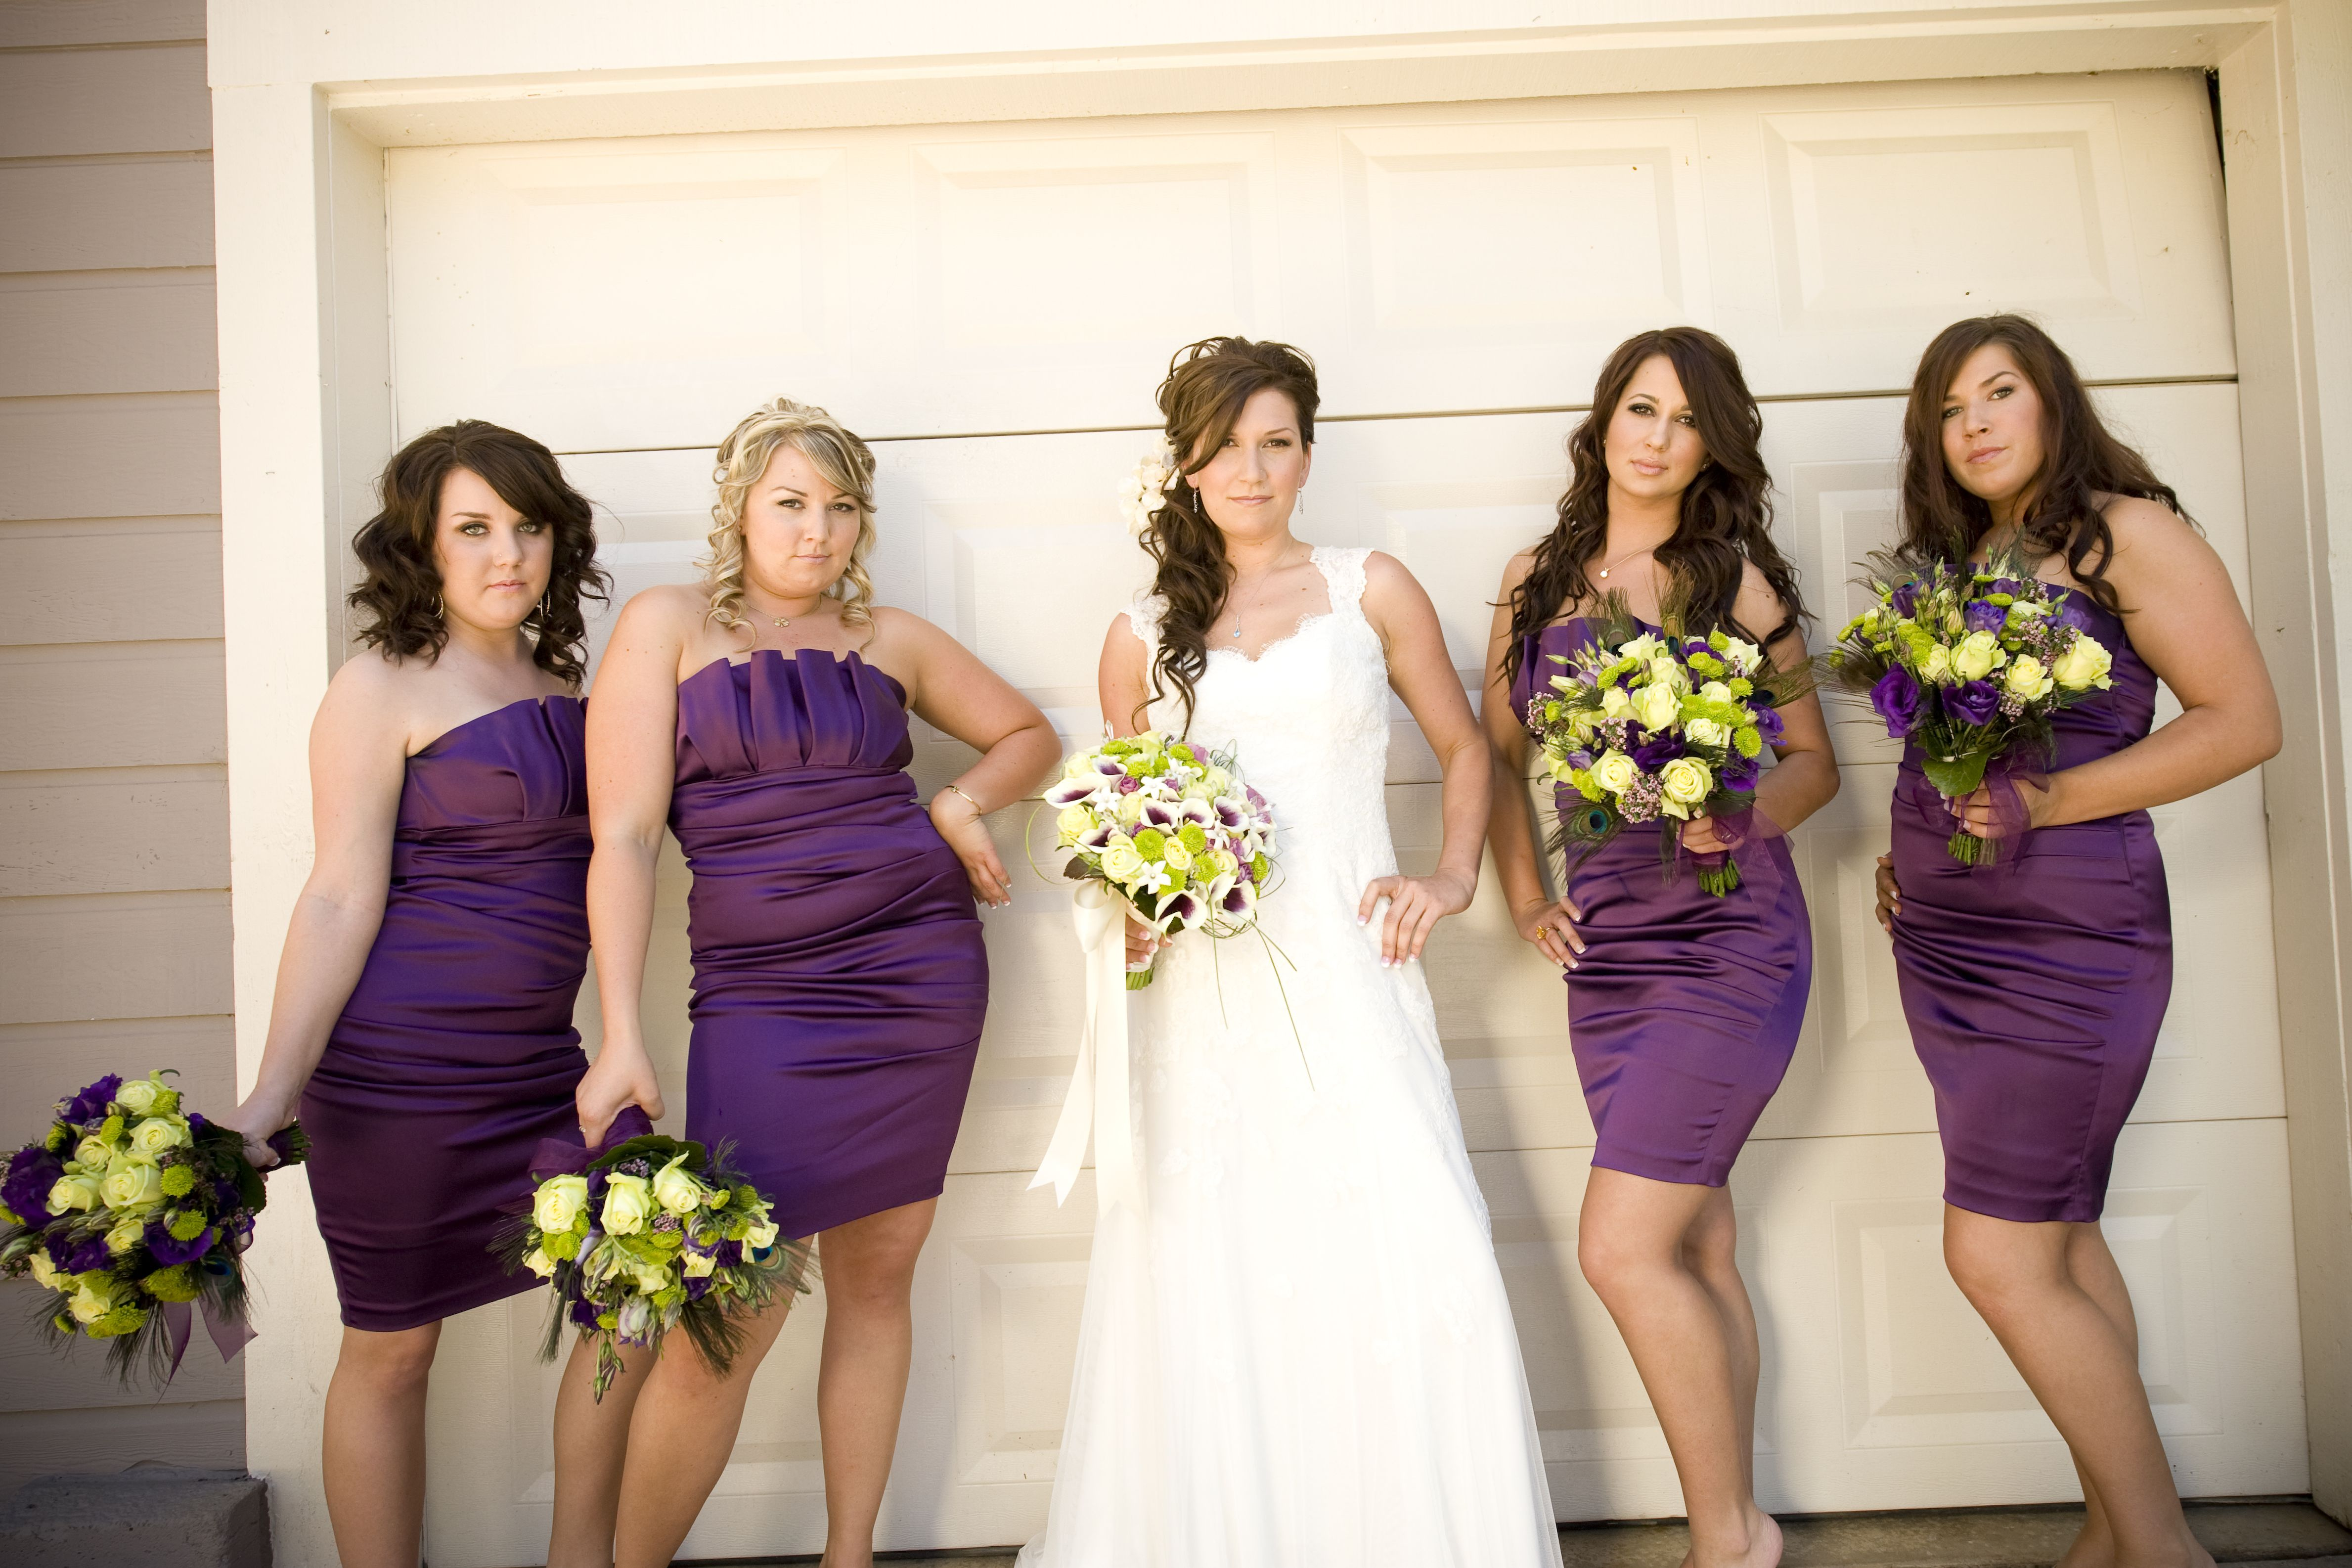 My big fat gypsy wedding dress with lights  New Bridesmaid dress inspiration Throw some peacock feathers in the